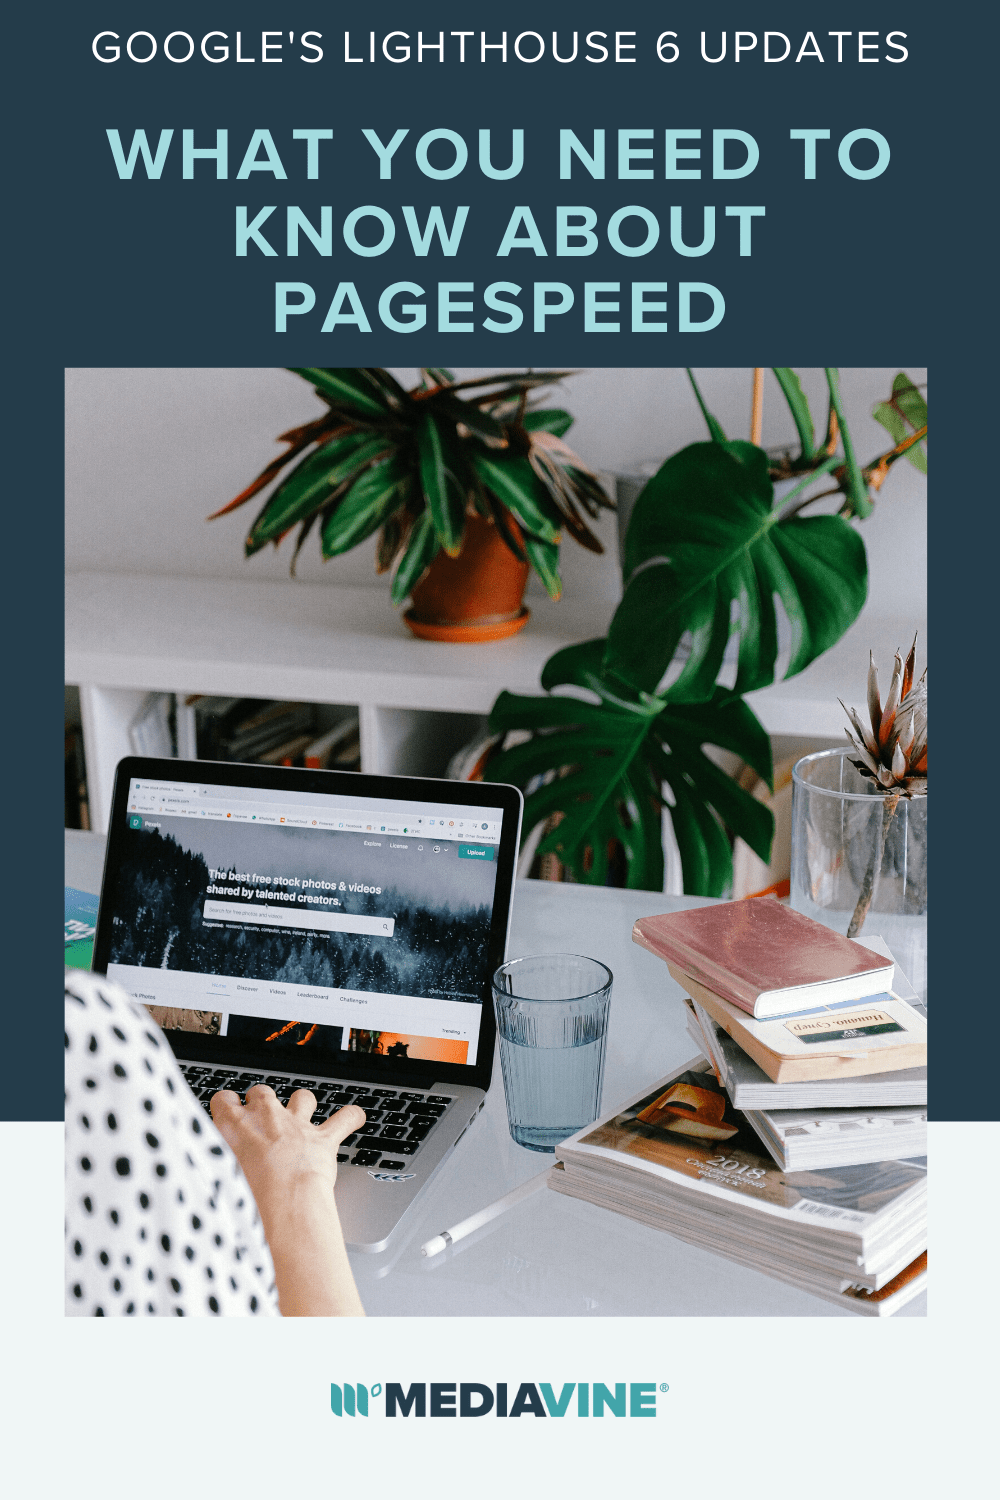 Mediavine Pinterest image - Google's Lighthouse 6 updatse: What you need to know about pagespeed